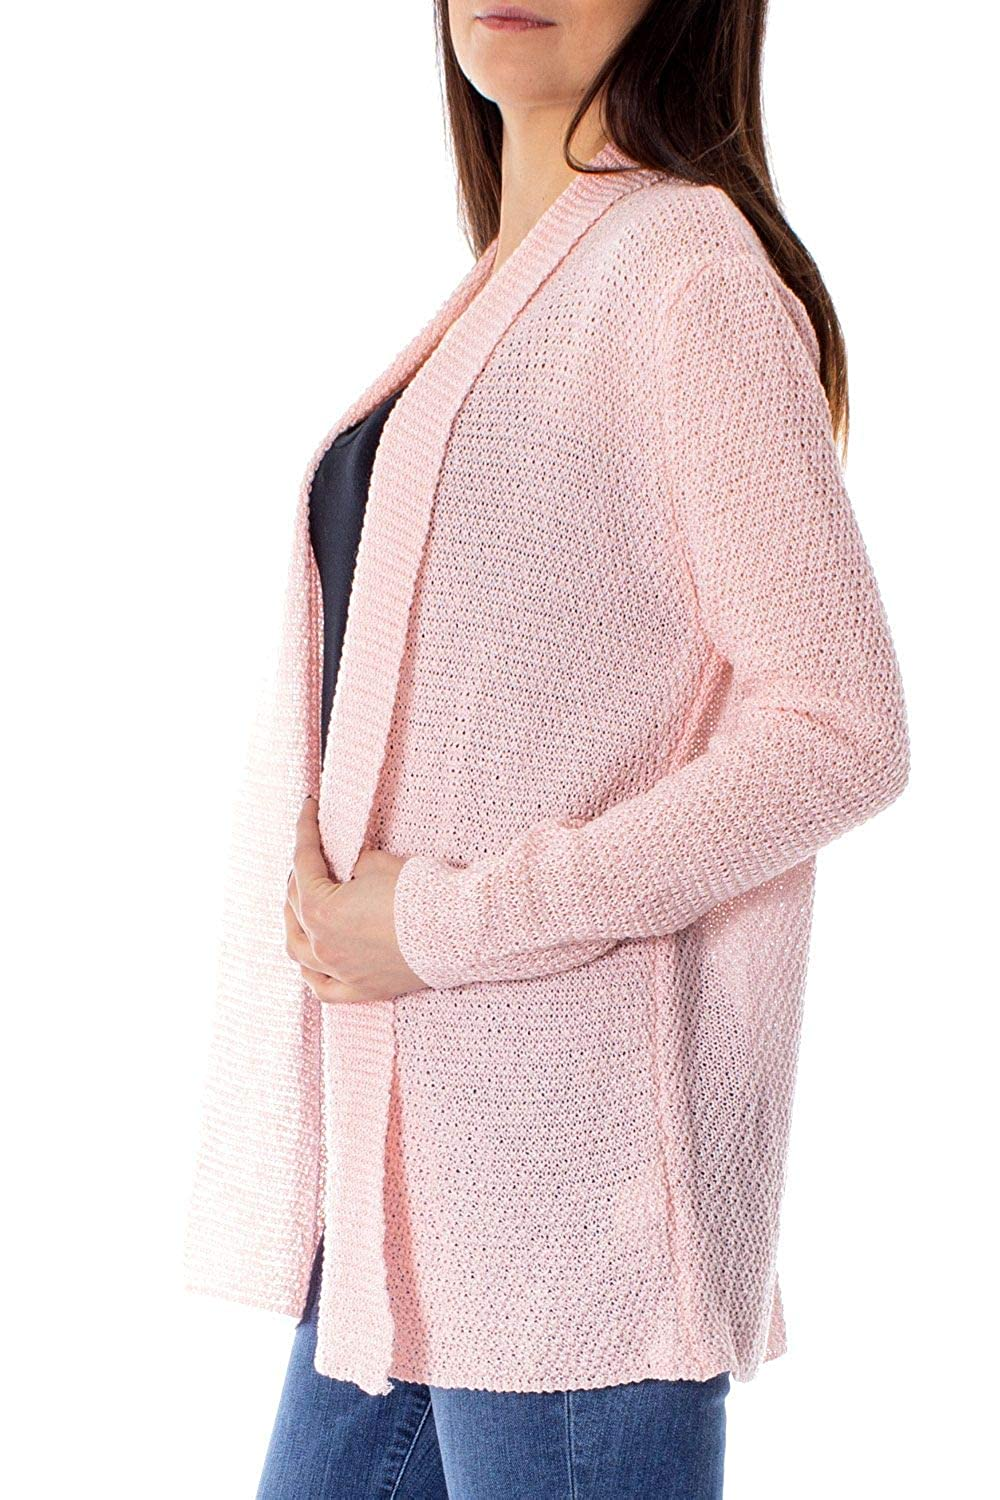 ONE.0 Luxury Fashion Womens OZ17PINK Pink Cardigan Season Outlet